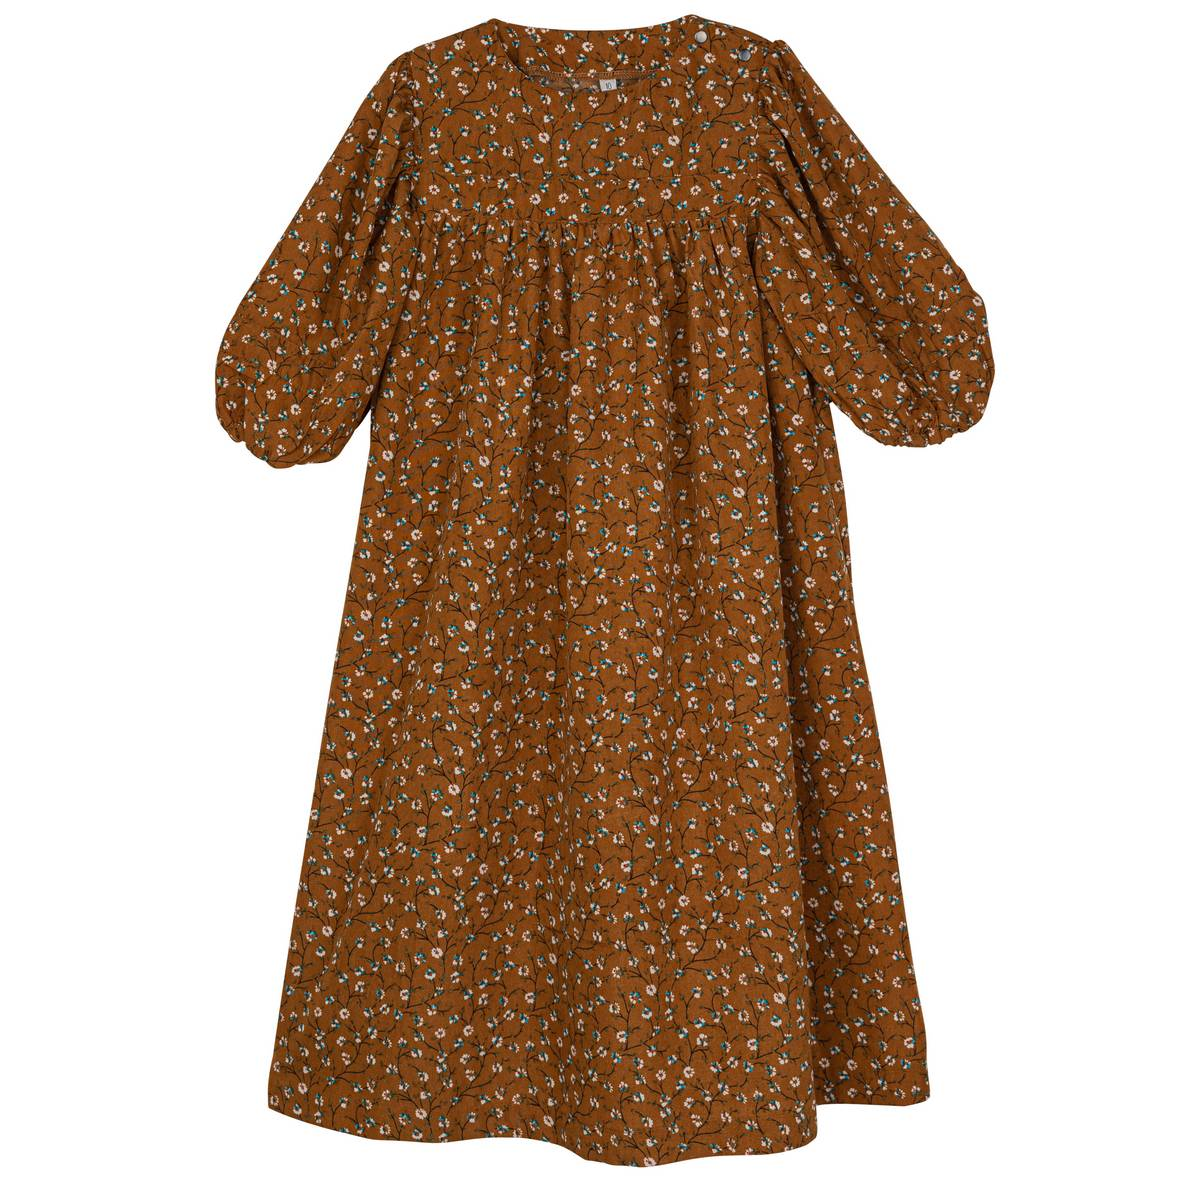 Sweet Threads Brown Floral Mandy Dress